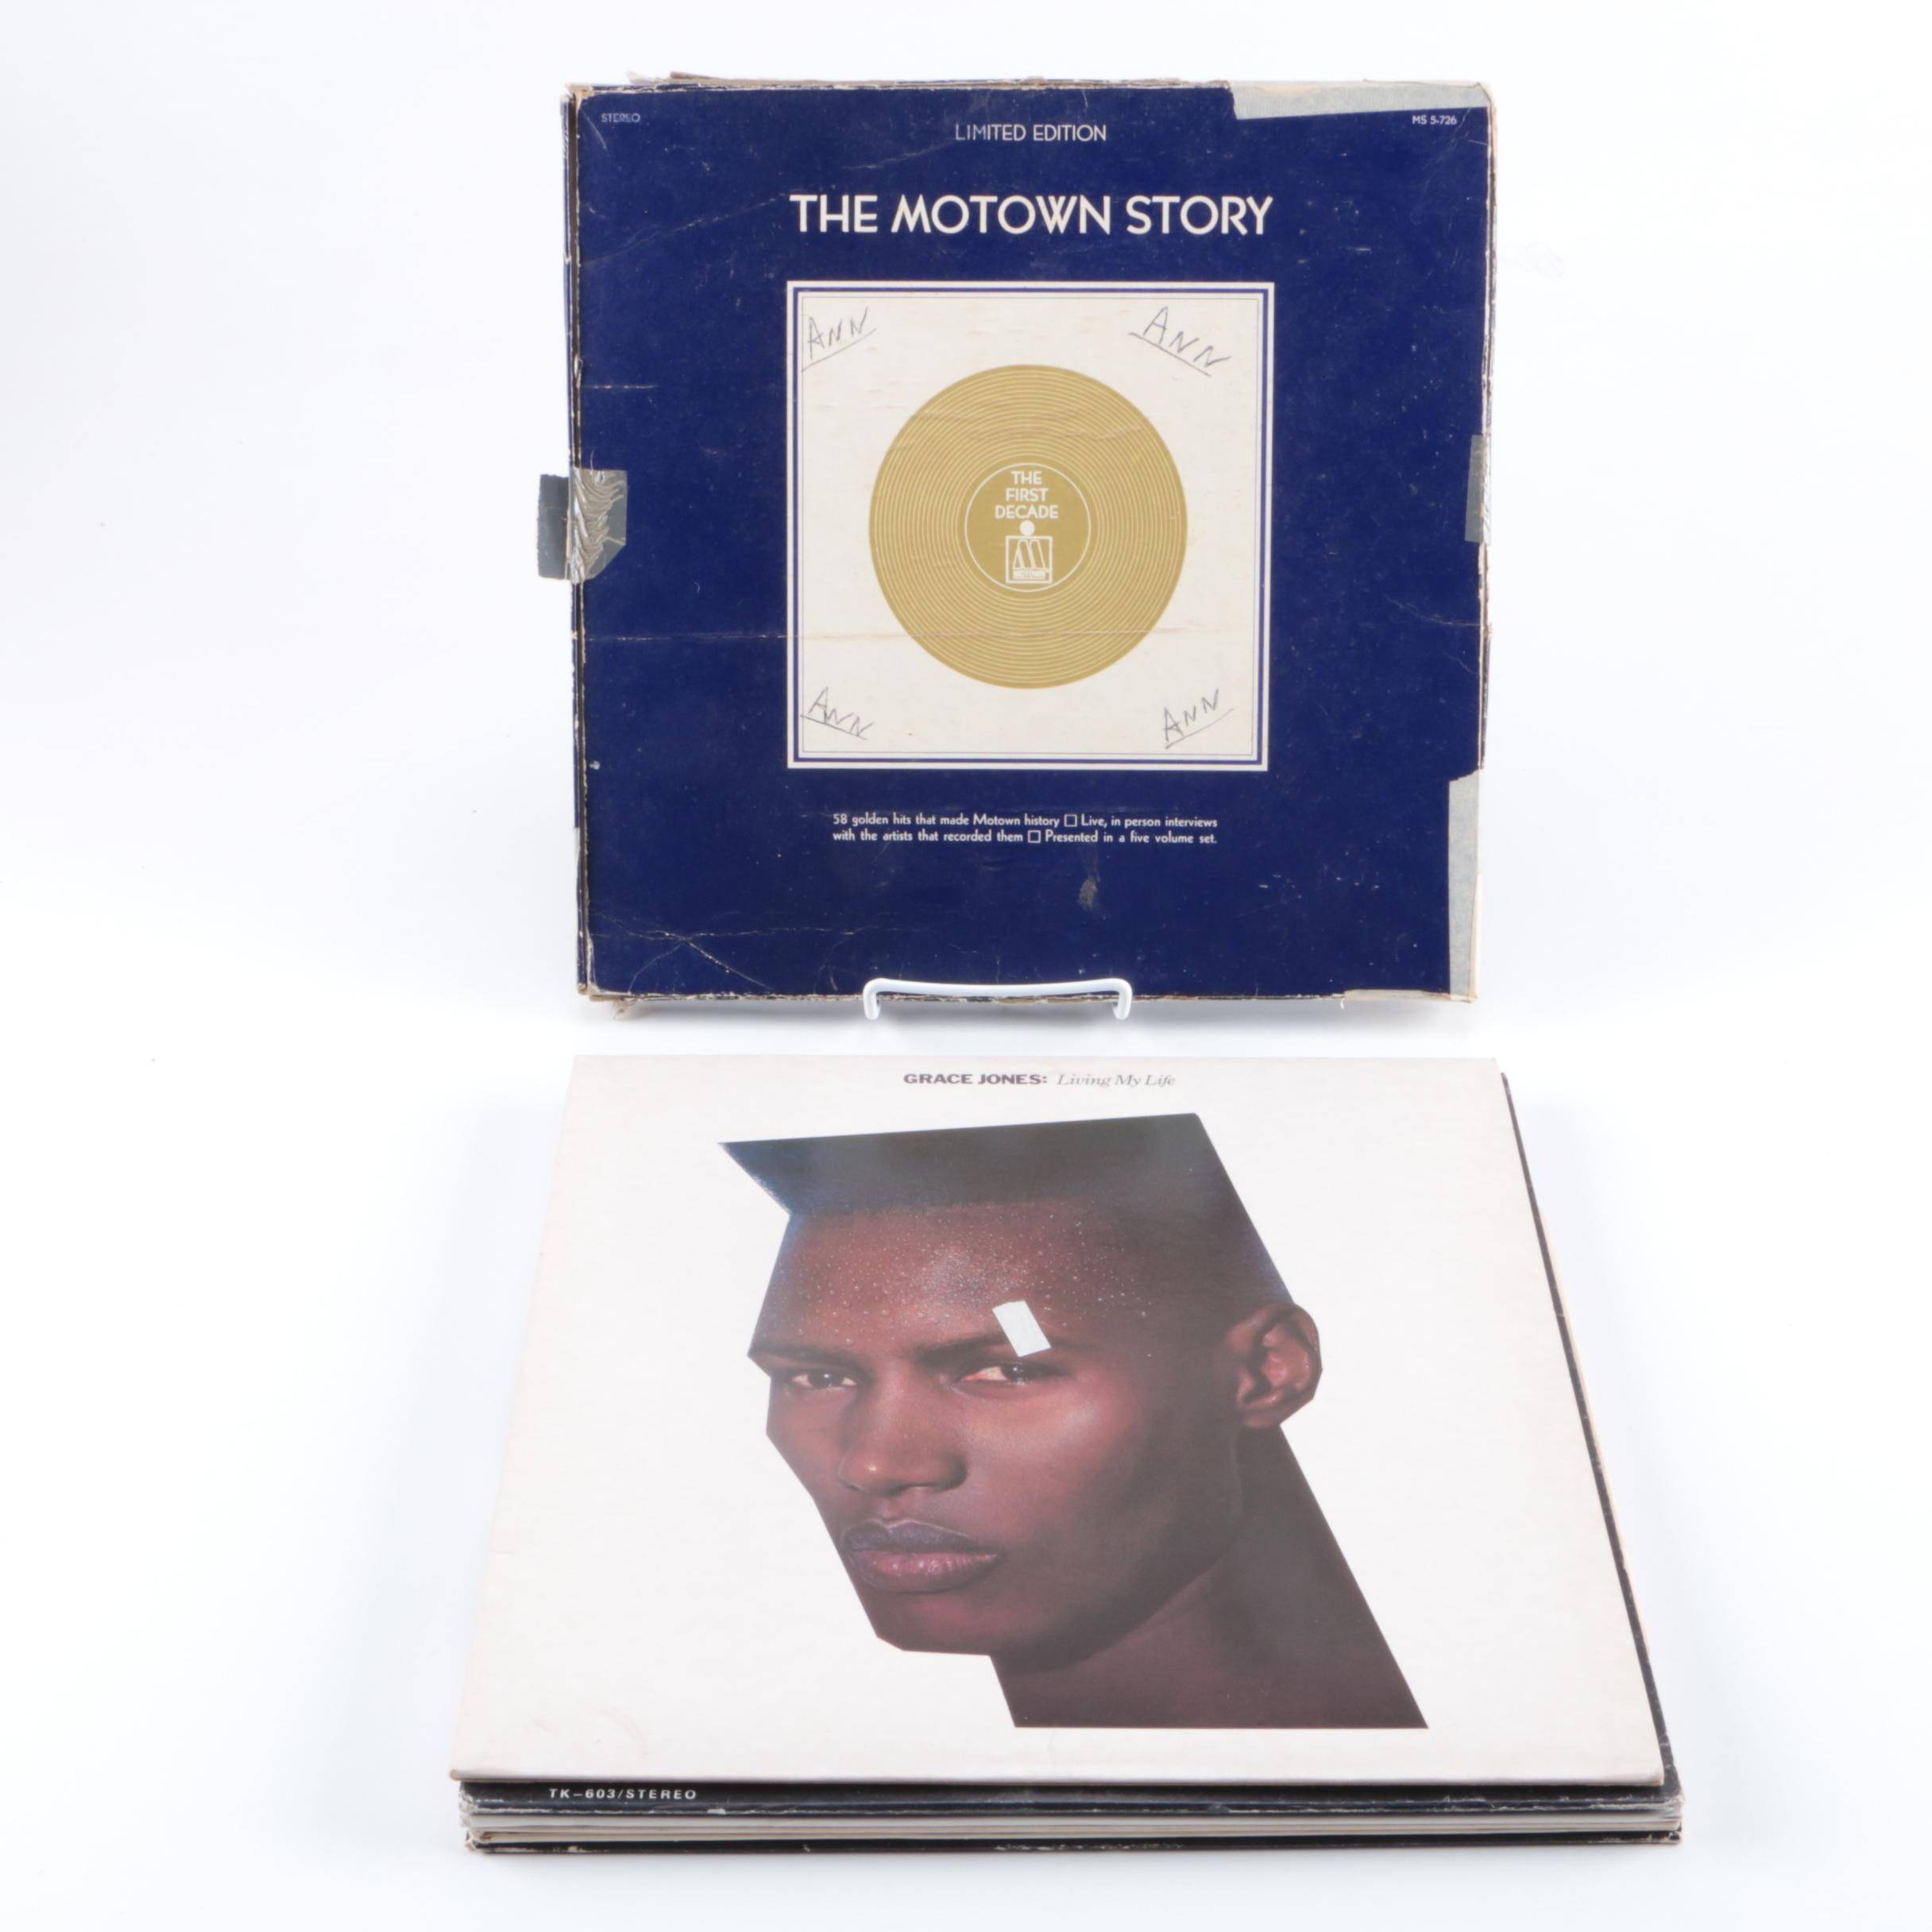 Motown, Grace Jones and Other R&B, Funk, Jazz LPs